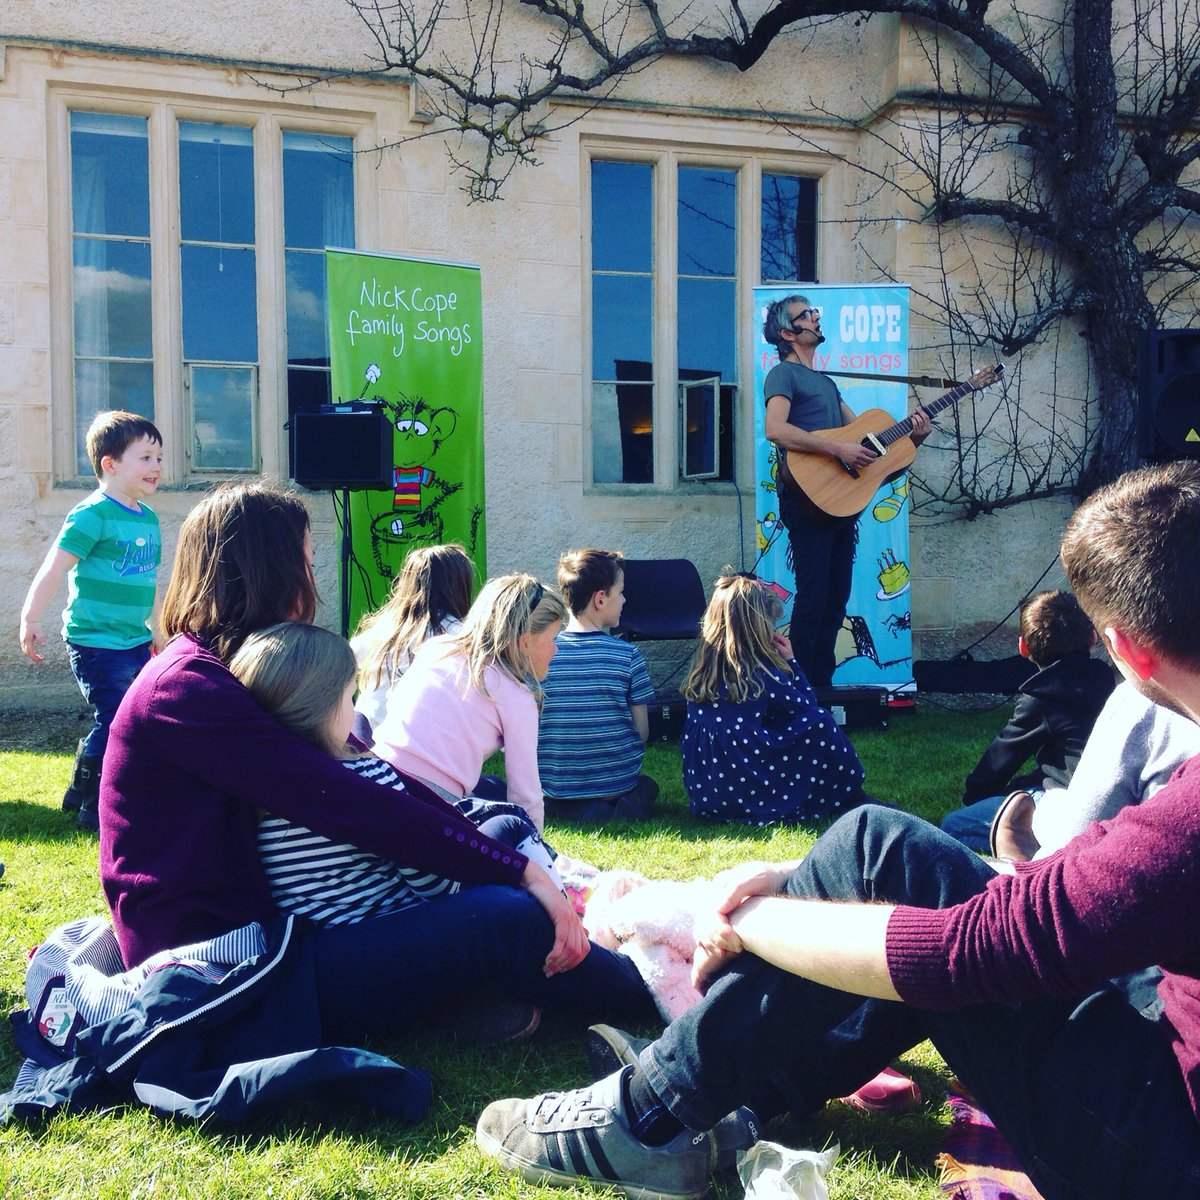 Glorious songs from @nickcope4 in the glorious sunshine @CoggesWitney today #GOODFriday https://t.co/WY1B0uaOxT